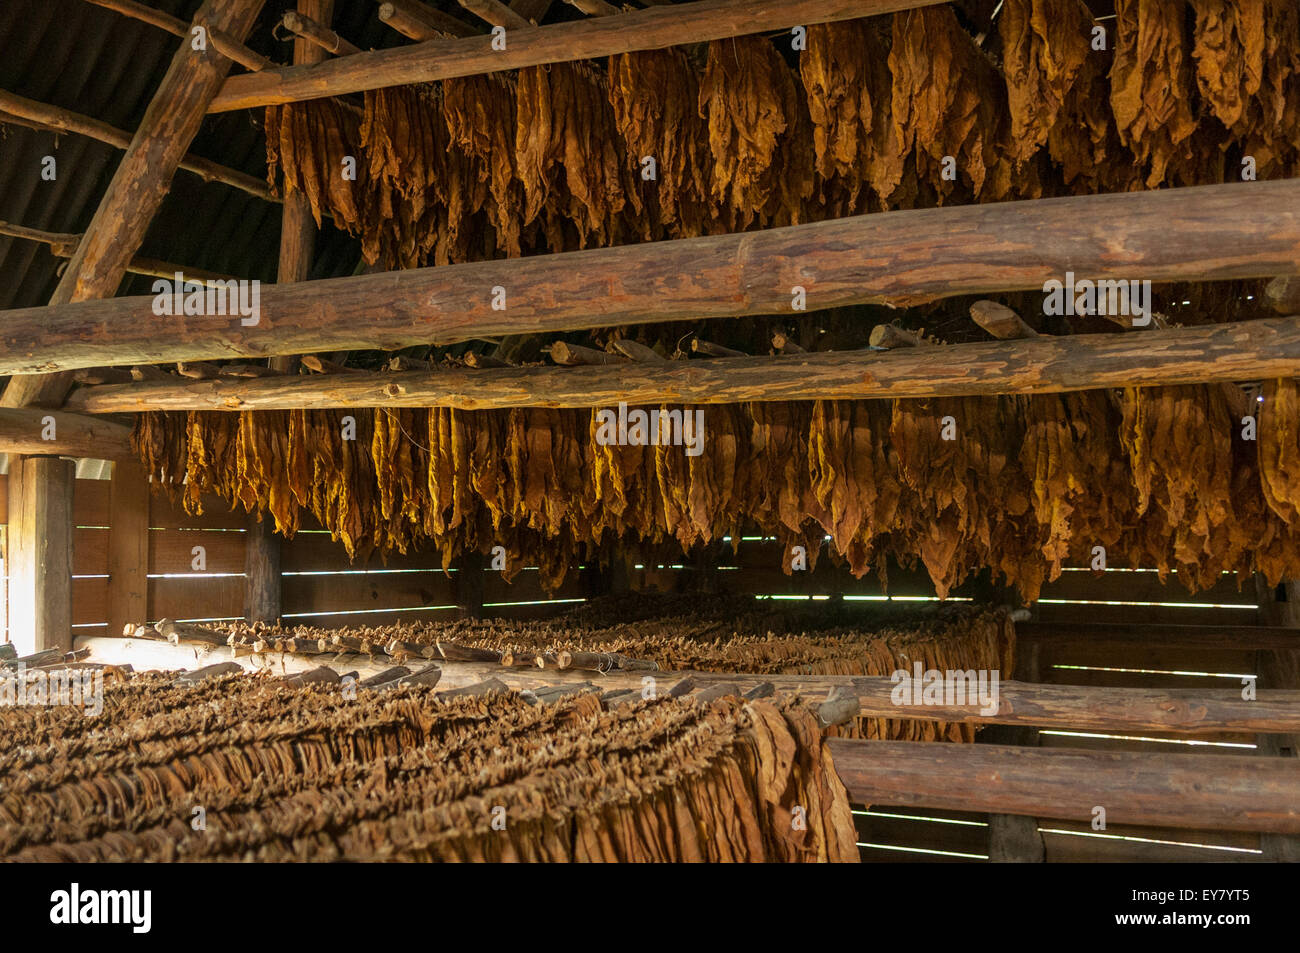 Cuban Cigar Tobacco Leaves Drying, Vinales, Cuba - Stock Image